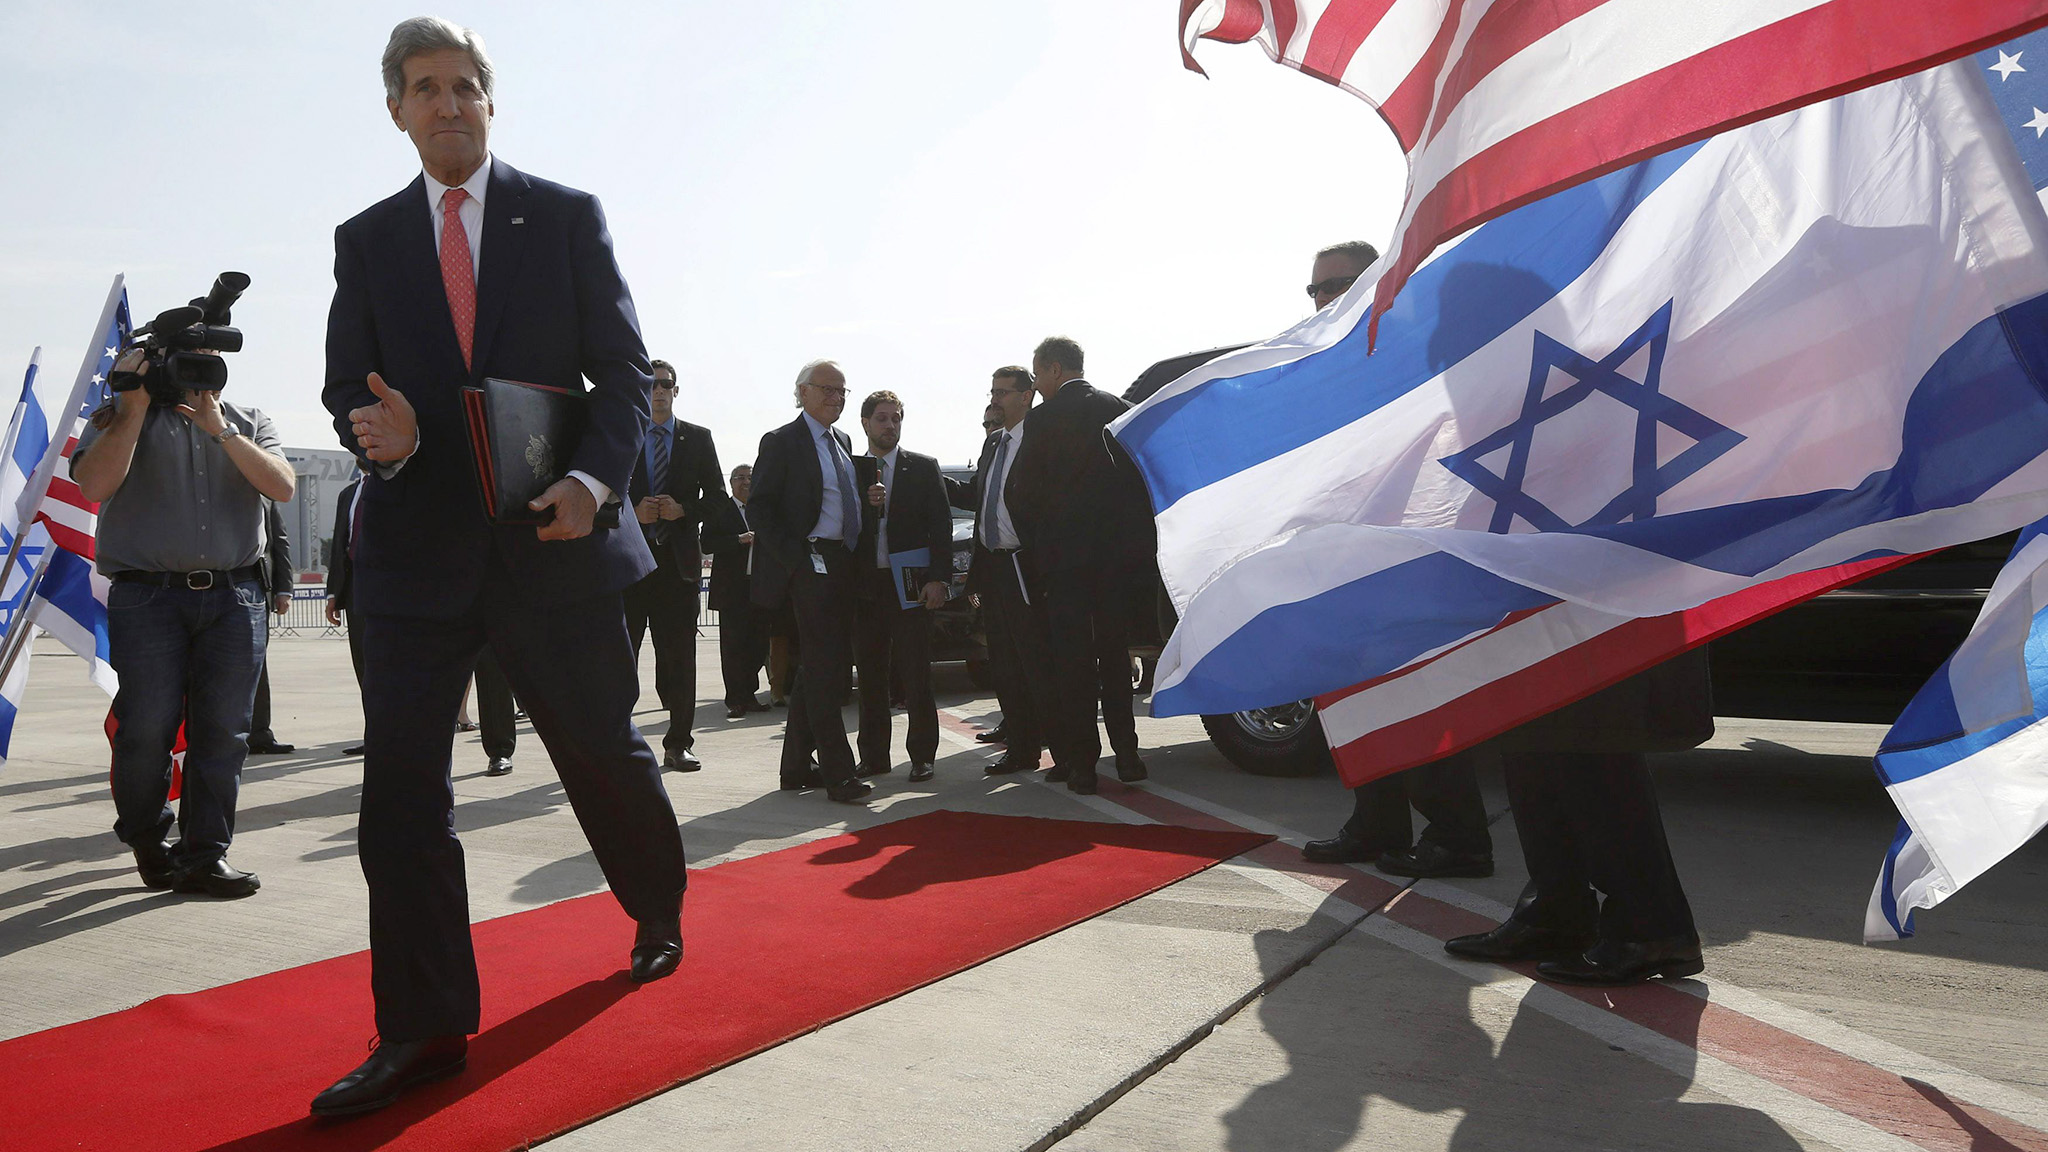 U.S. Secretary of State Kerry walks to his plane after a private meeting with Israeli PM Netanyahu in Tel Aviv